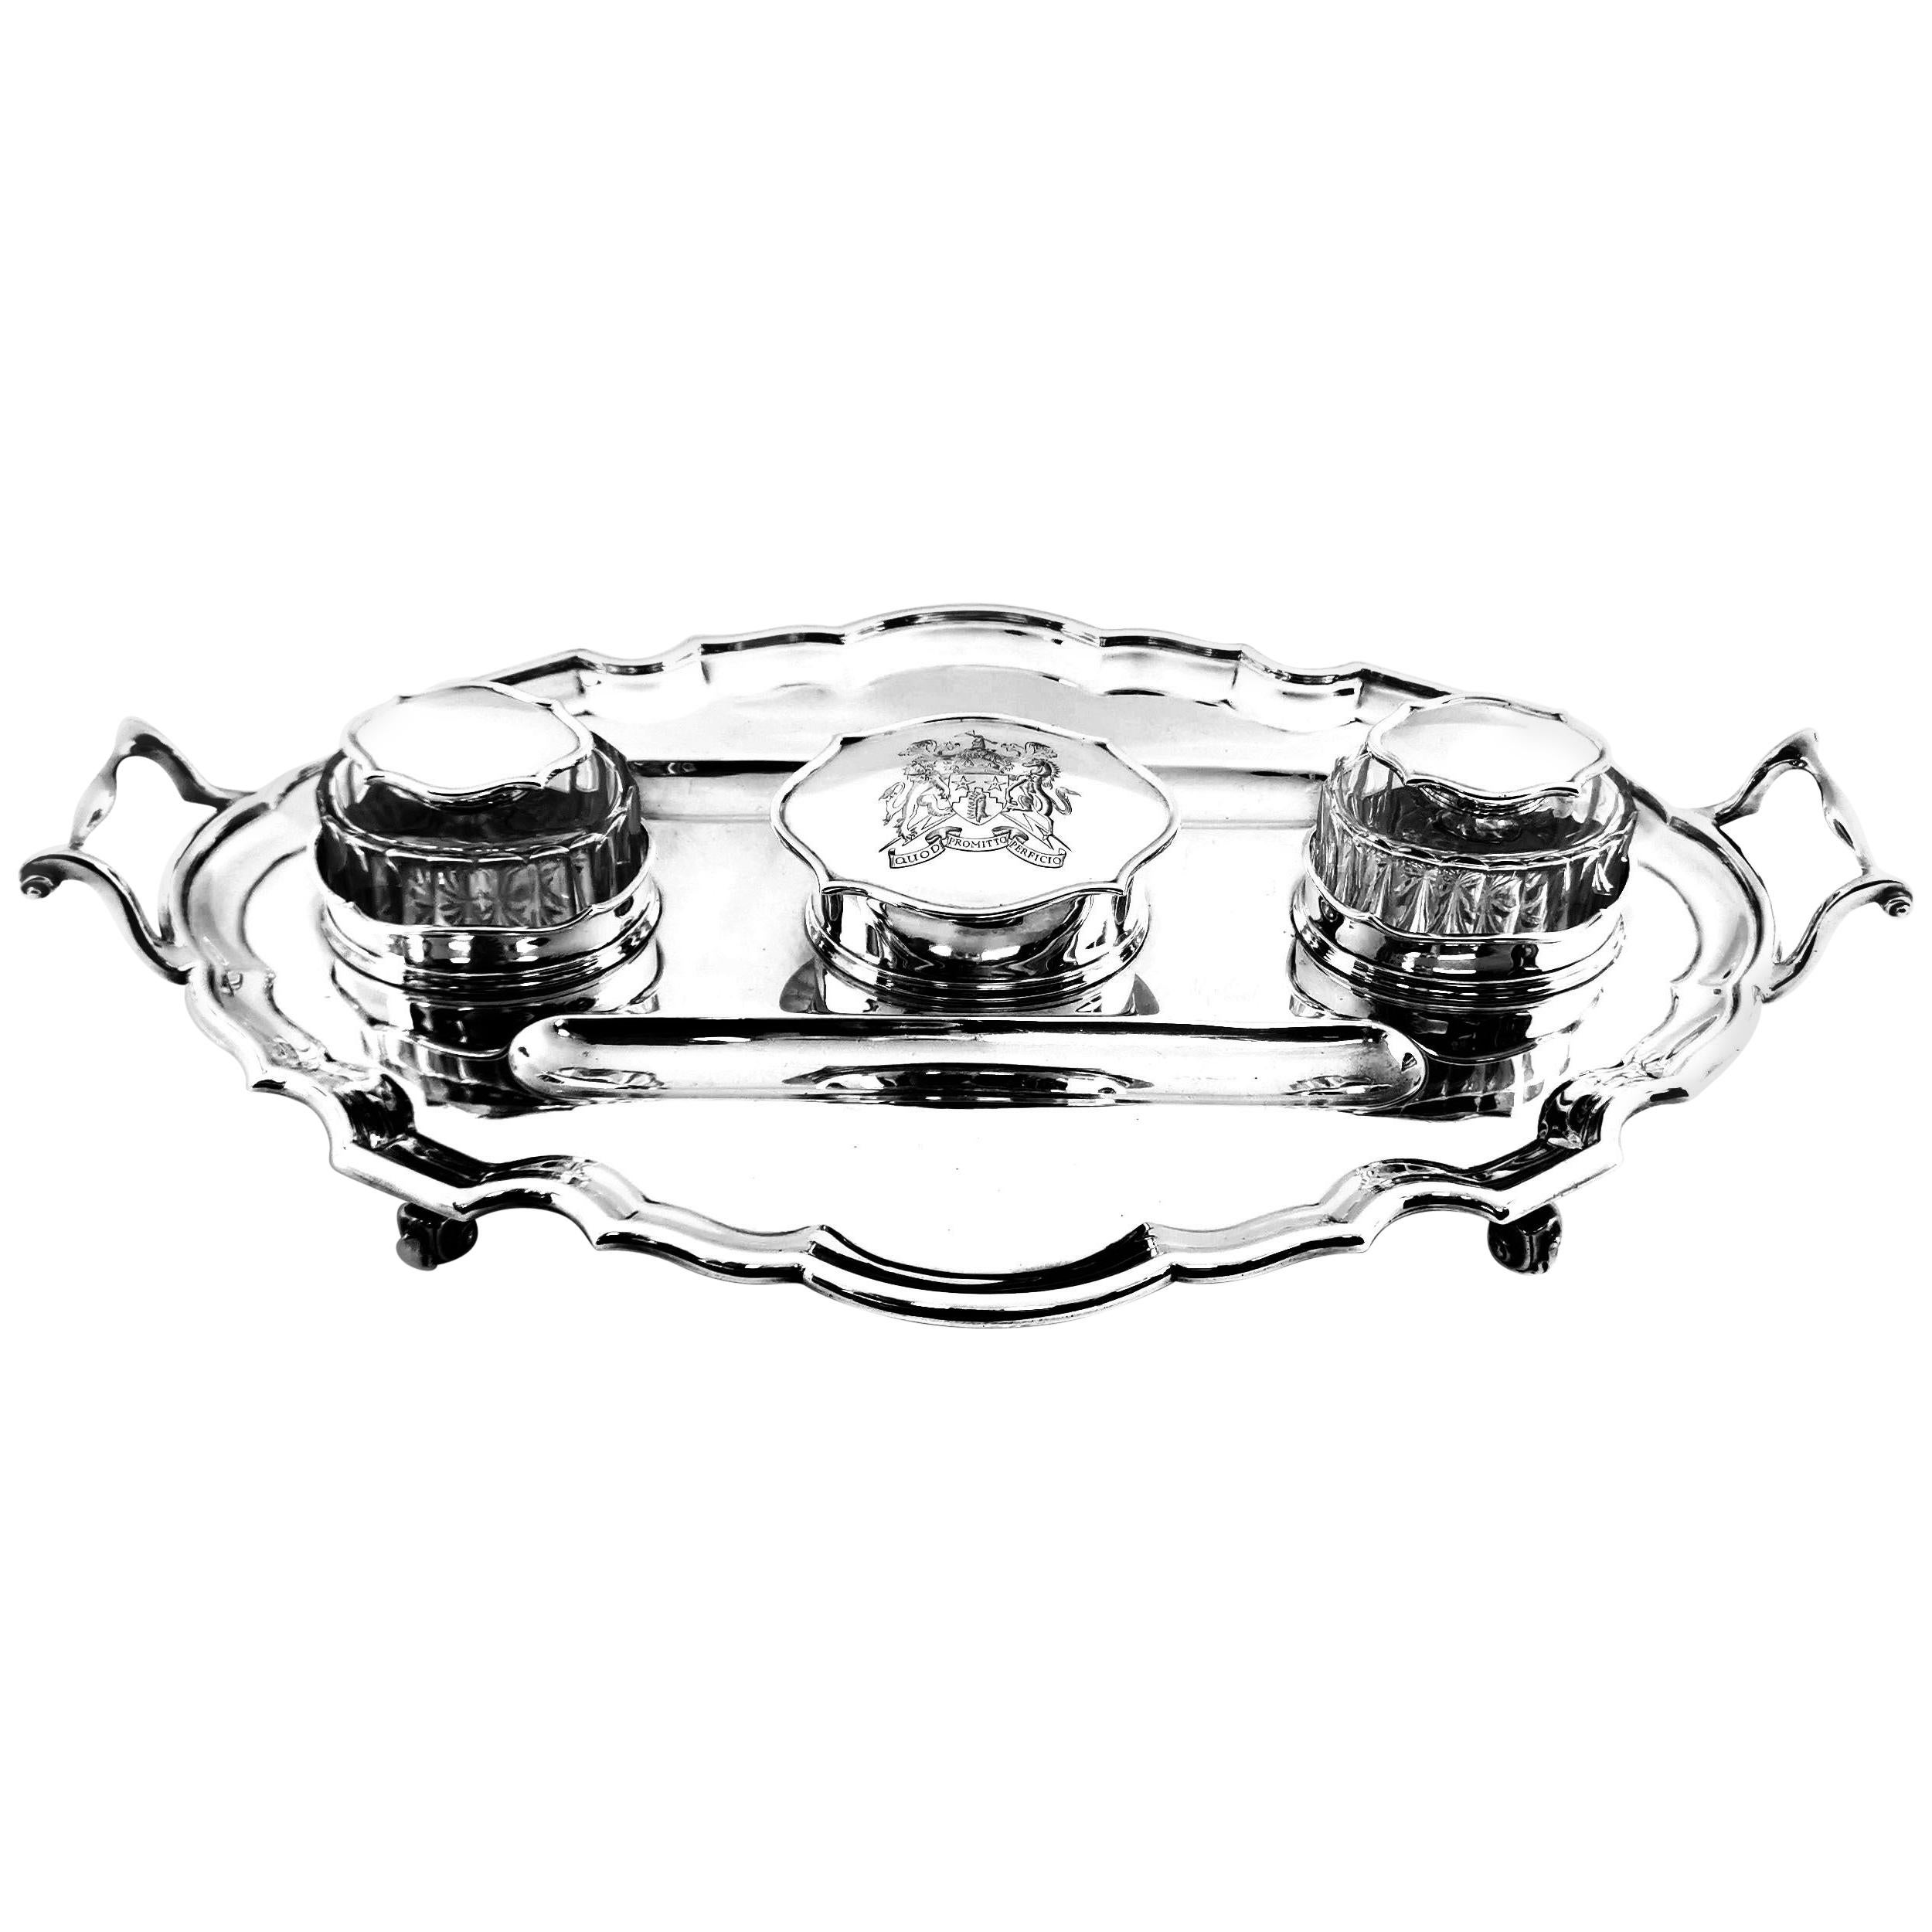 Antique Sterling Silver Inkstand Inkwell 1910 Large Desk Set Pen Tray